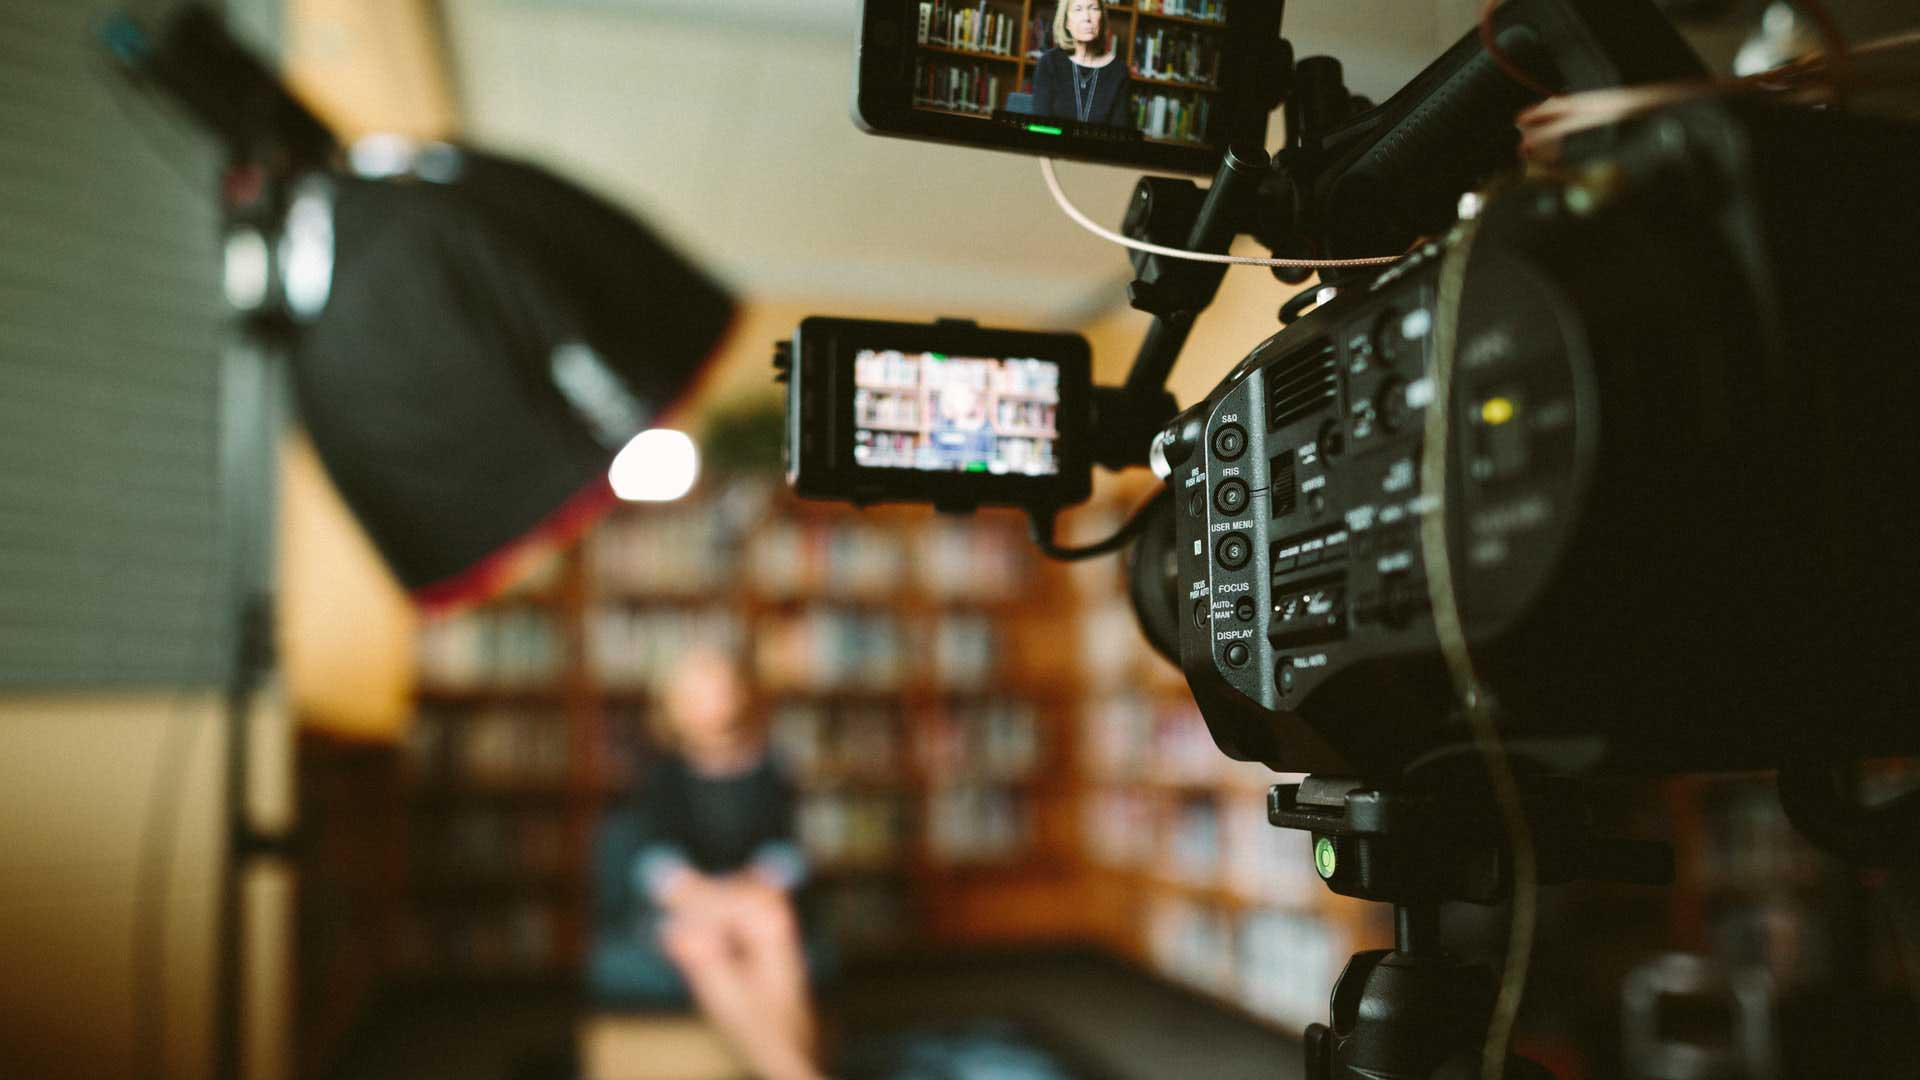 5 Reasons Why Video is So Important in the Digital Era